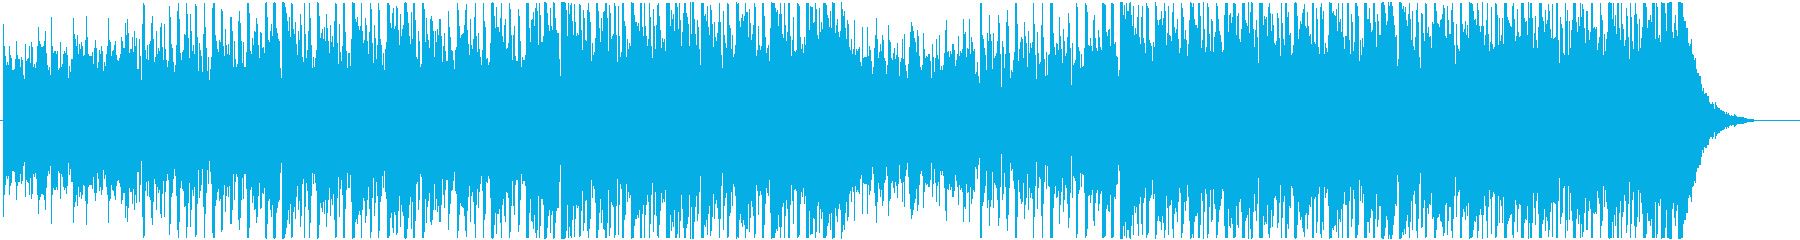 BGM for web advertising with a friendly atmosphere's reproduced waveform